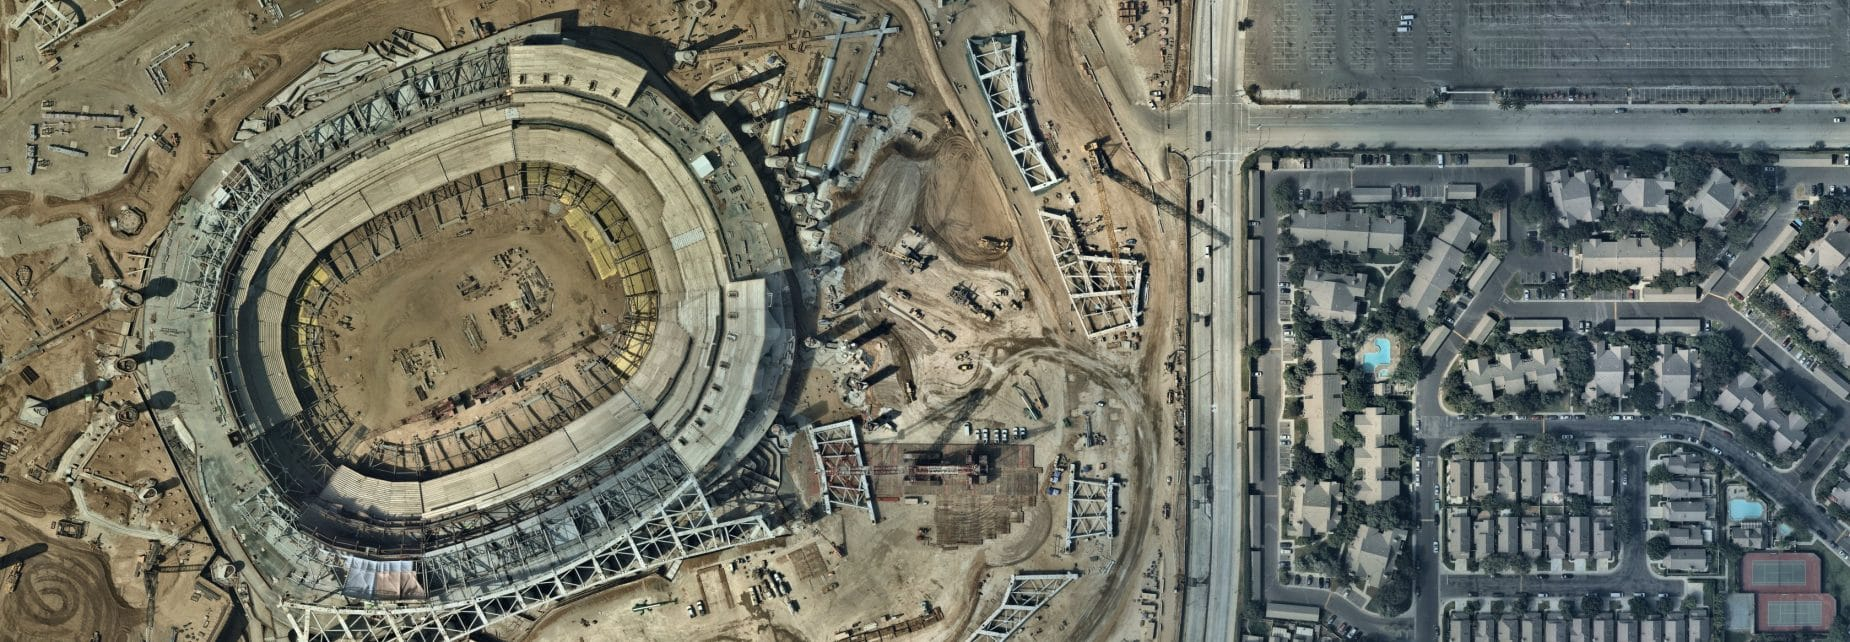 high-resolution-aerial-imagery